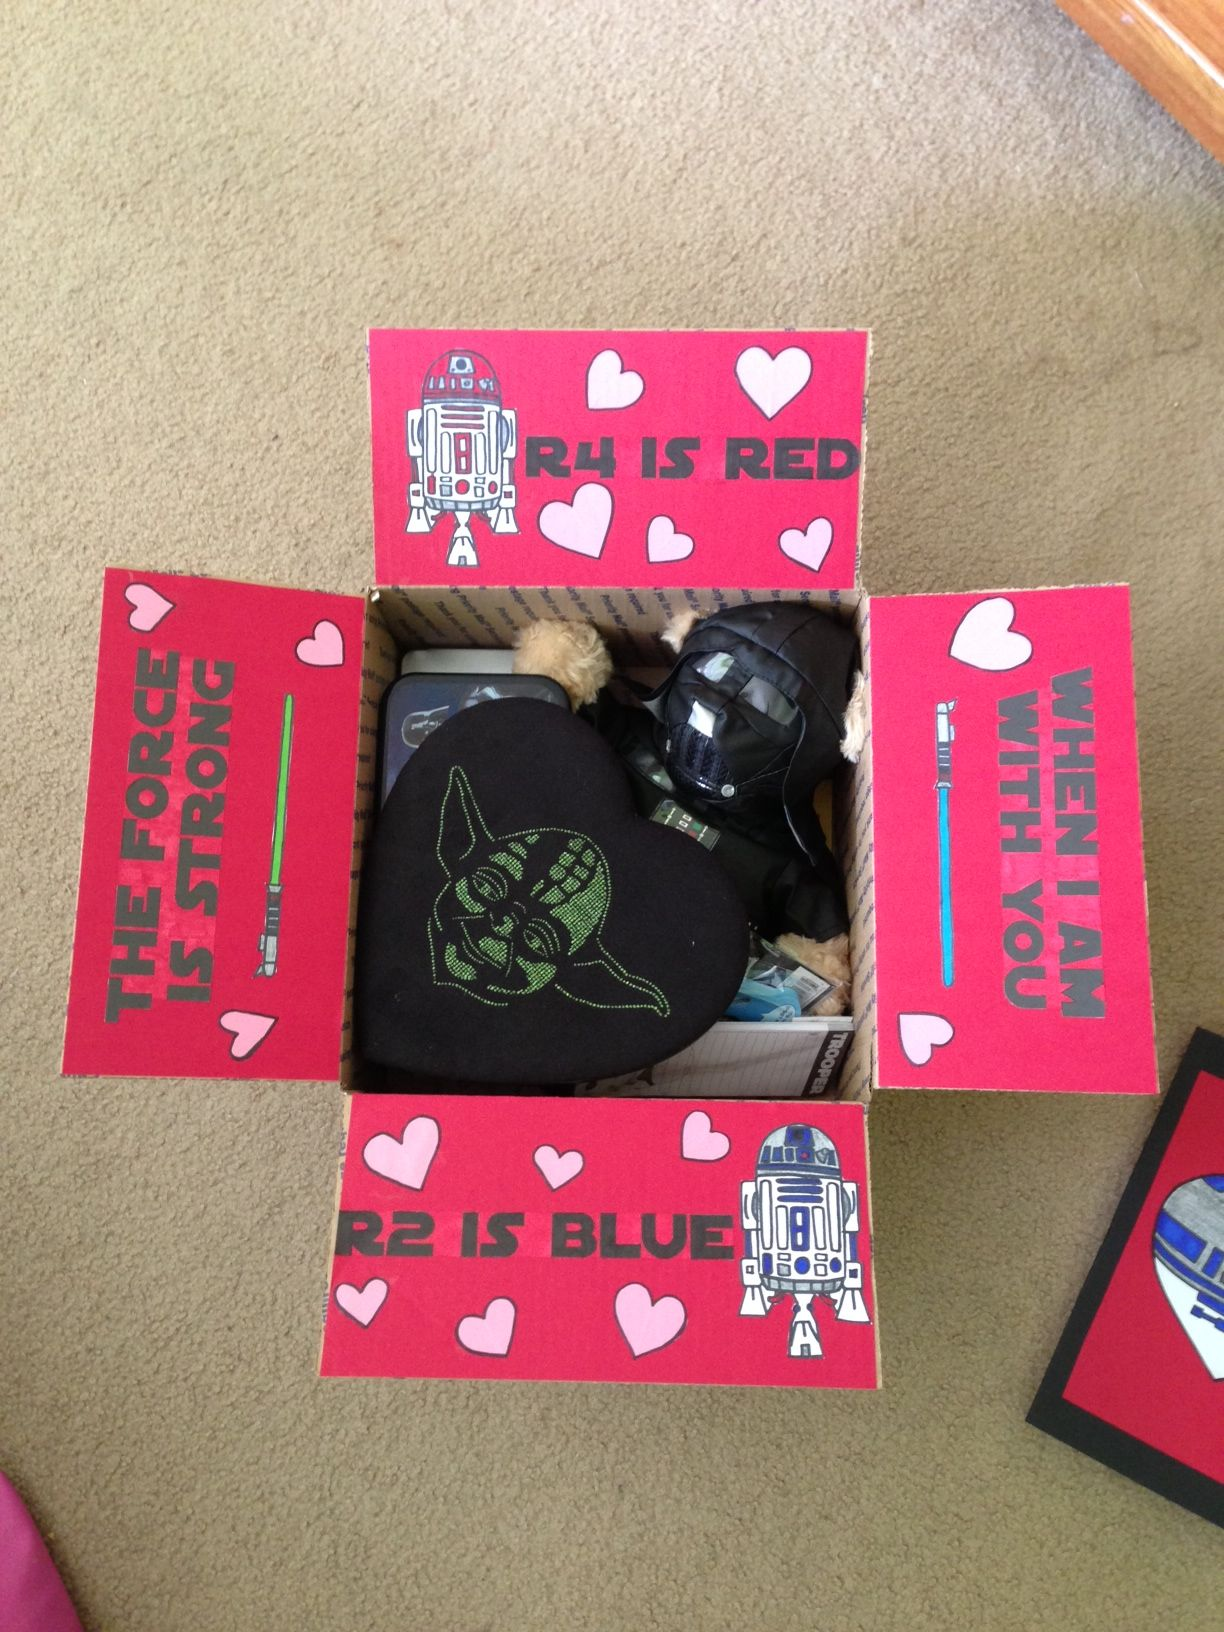 Star Wars Valentine S Day Care Package I Made For John Star Wars Valentines Valentines Day Care Package Birthday Care Packages